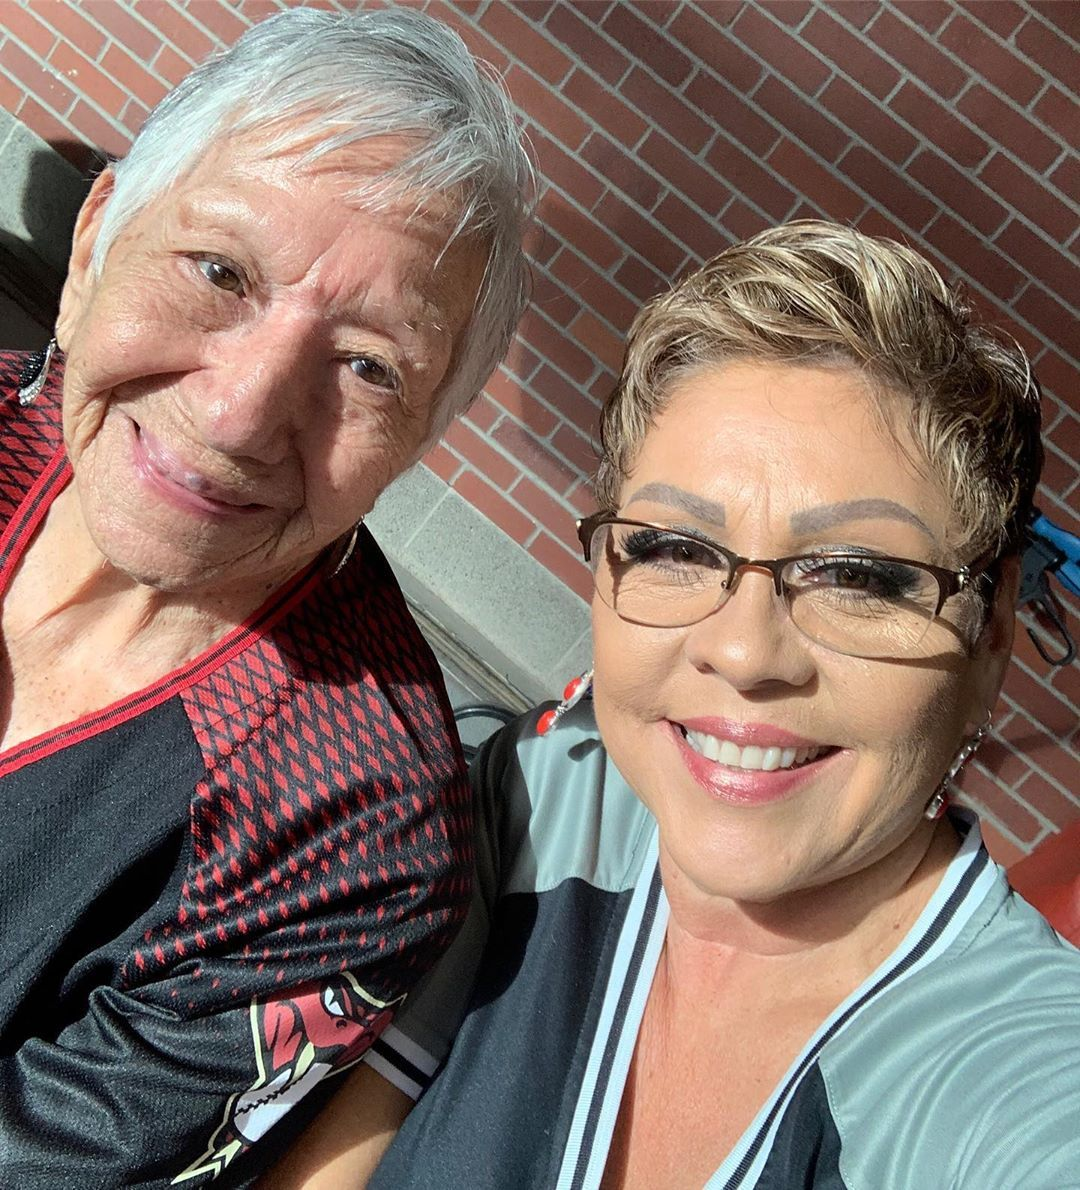 Grandma Vanilla had fun last night with her daughter, Rosie, her son, Mike, and the rest of the fam at the D-Backs game last night ❤️